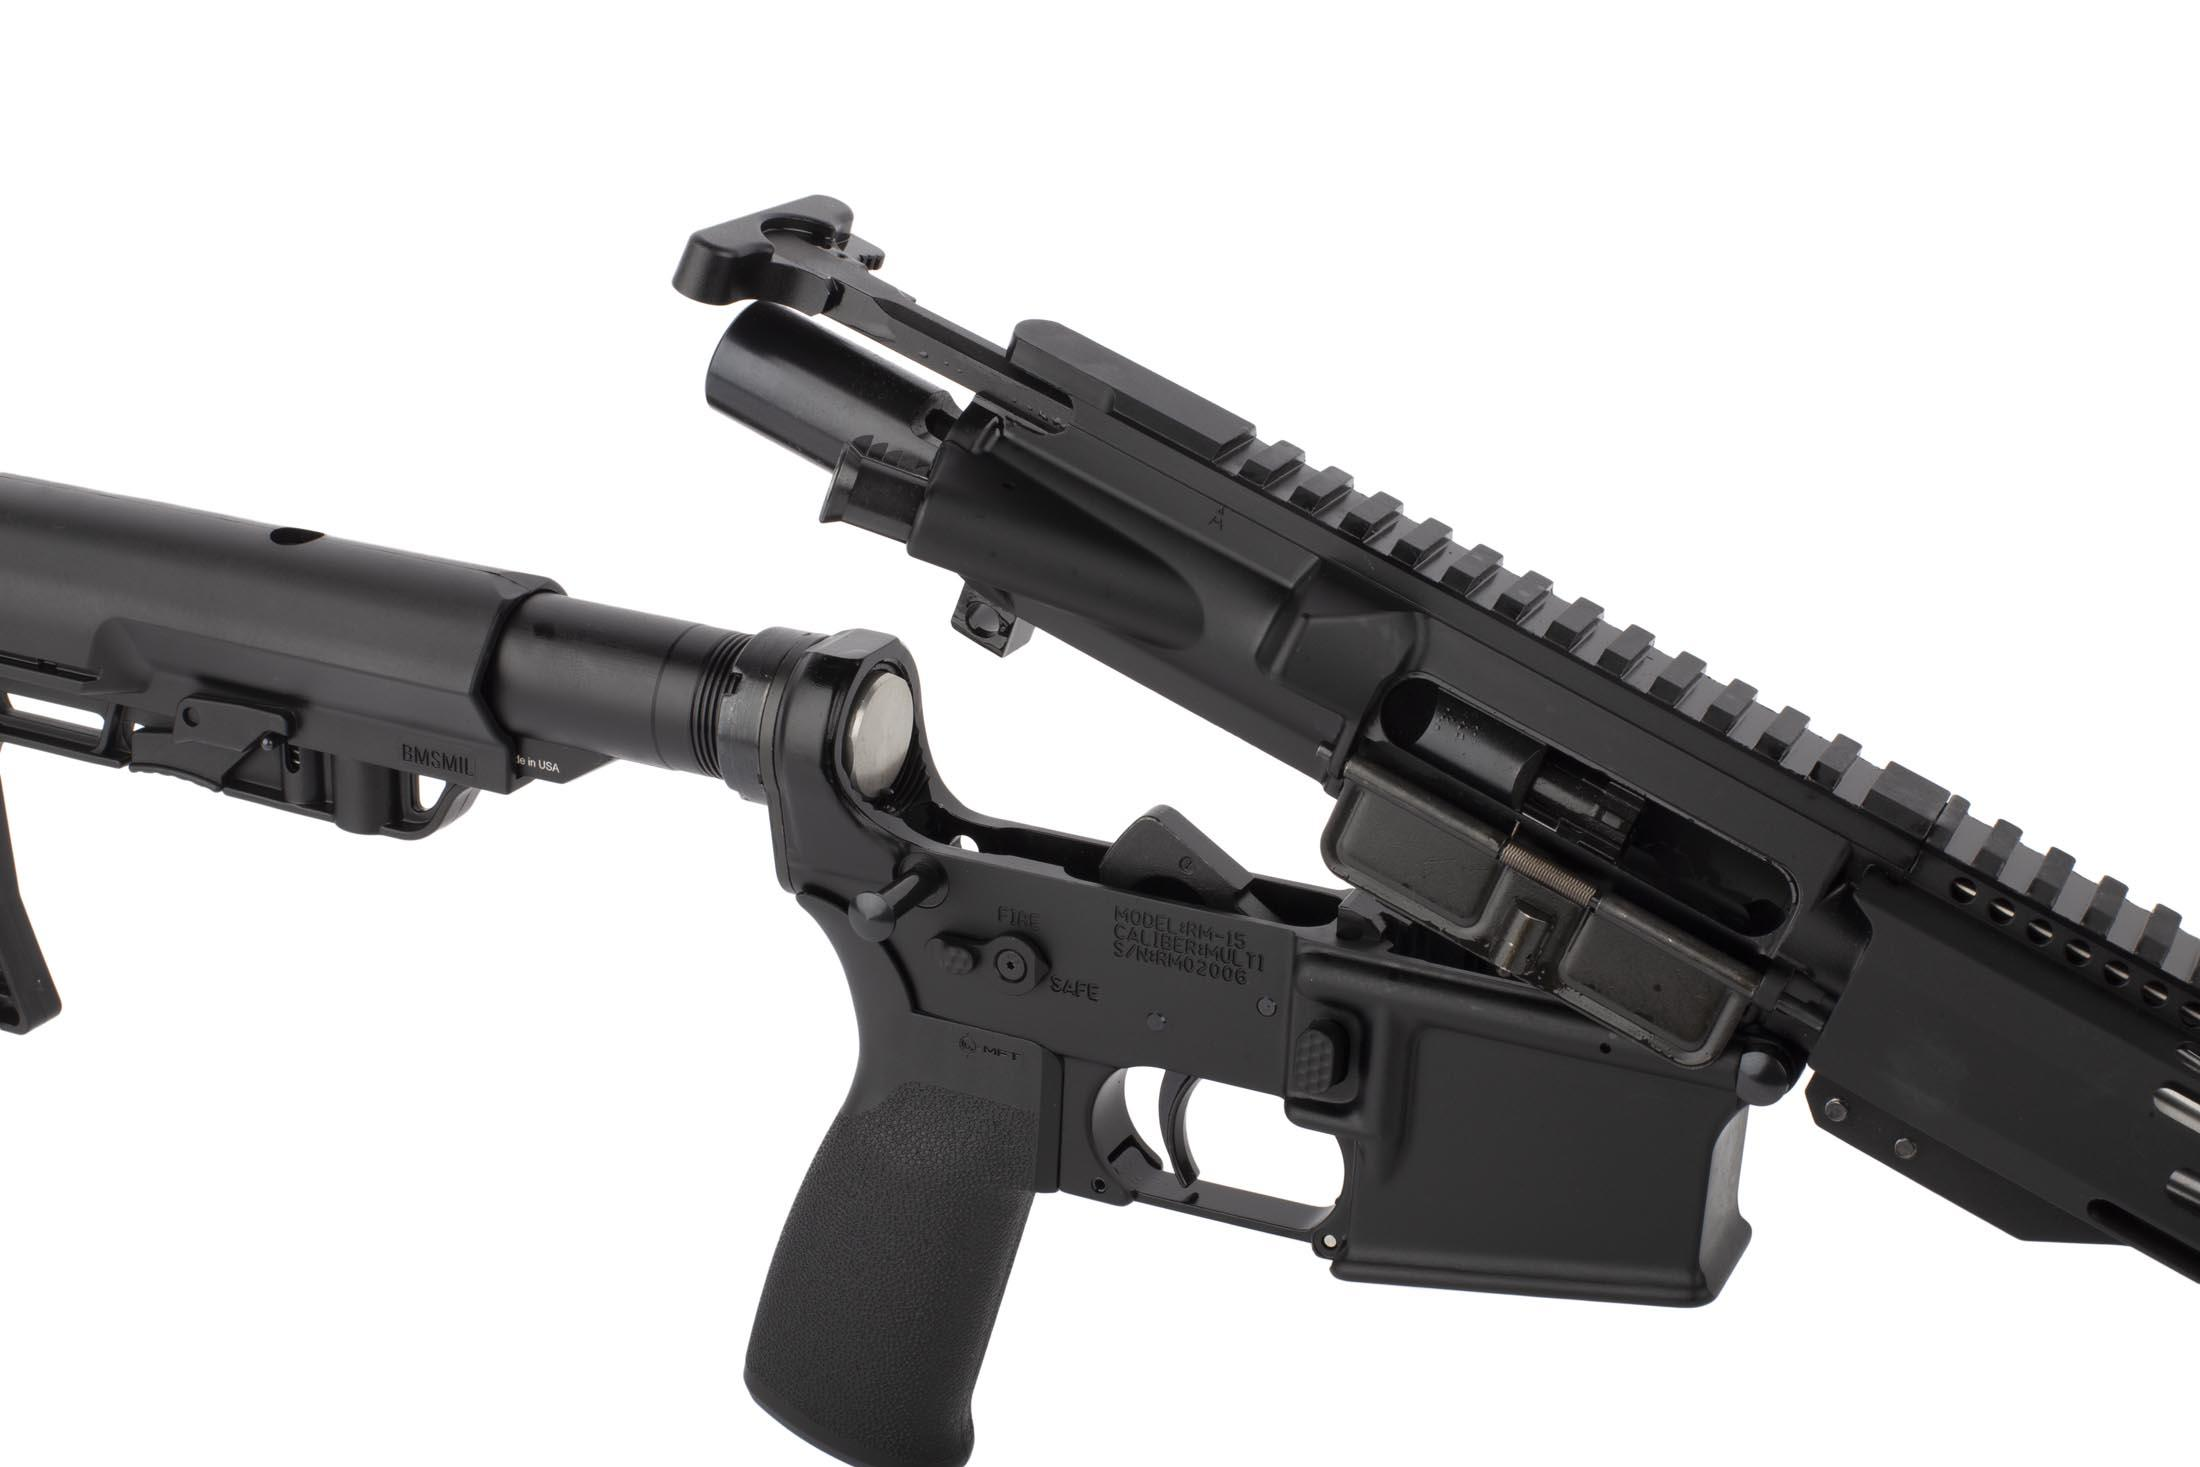 Radical 18in .223 Wylde AR15 featuers an M16 cut bolt carrier group and standard MIL-SPEC charging handle